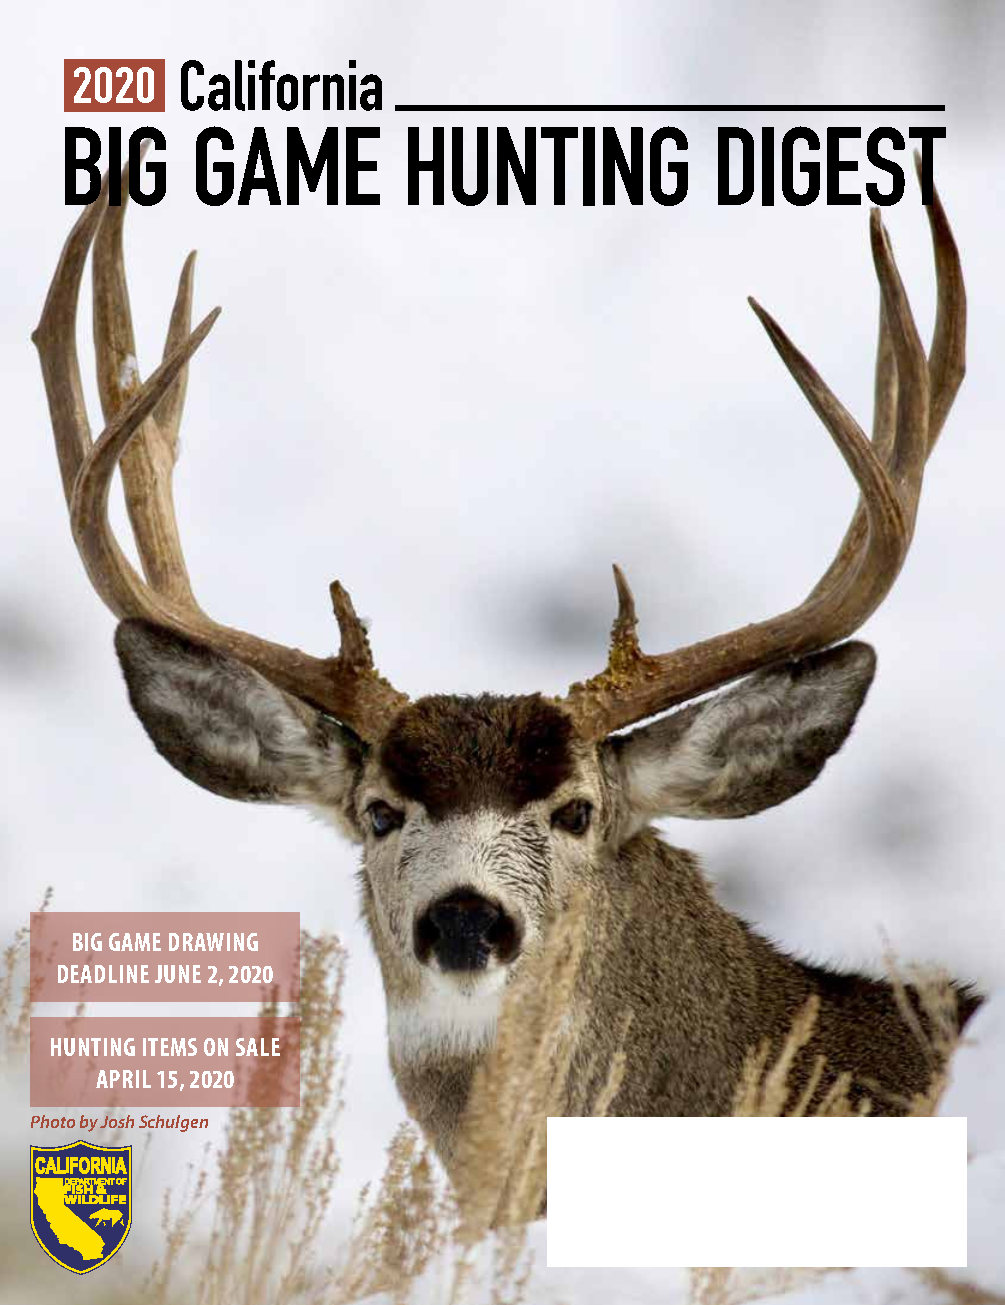 2020 California Big Game Hunting Digest cover